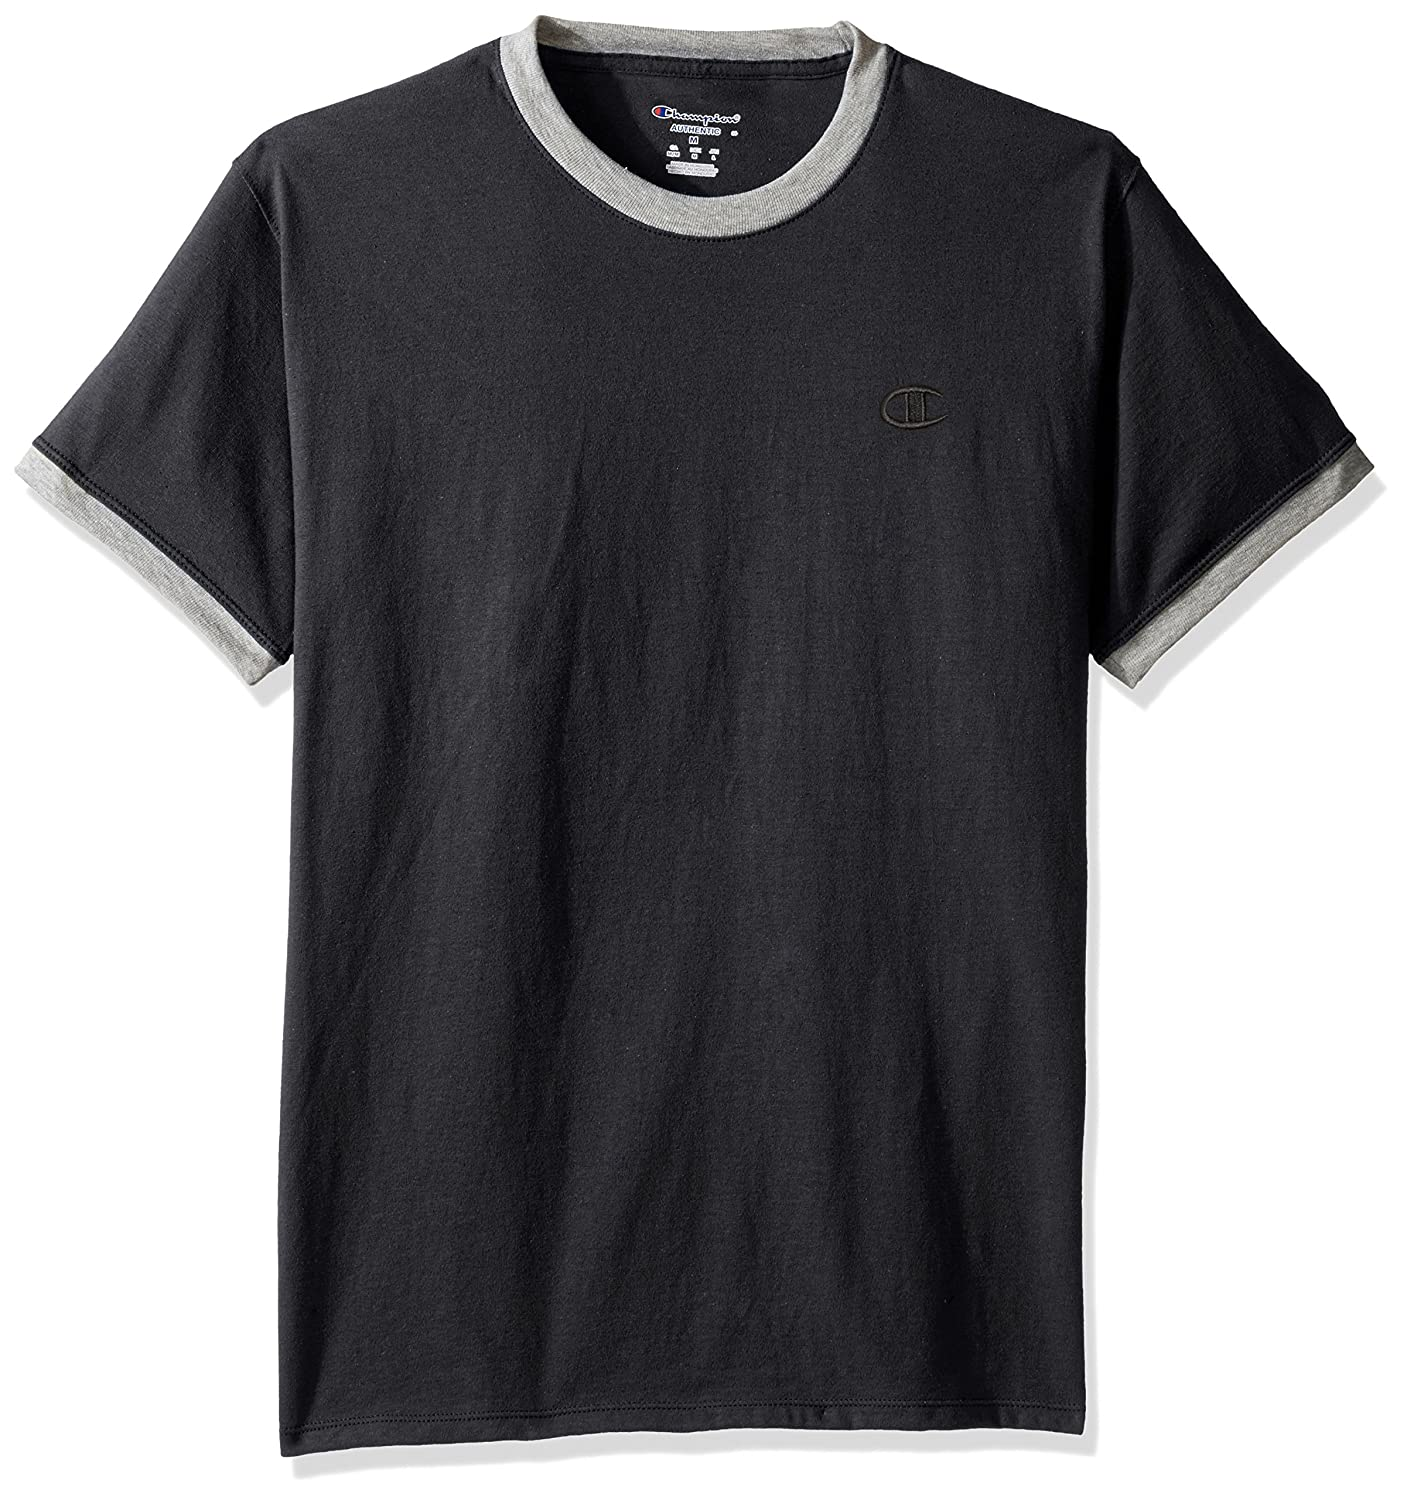 0c886030a65c Amazon.com: Champion Men's Classic Jersey Ringer Tee: Clothing